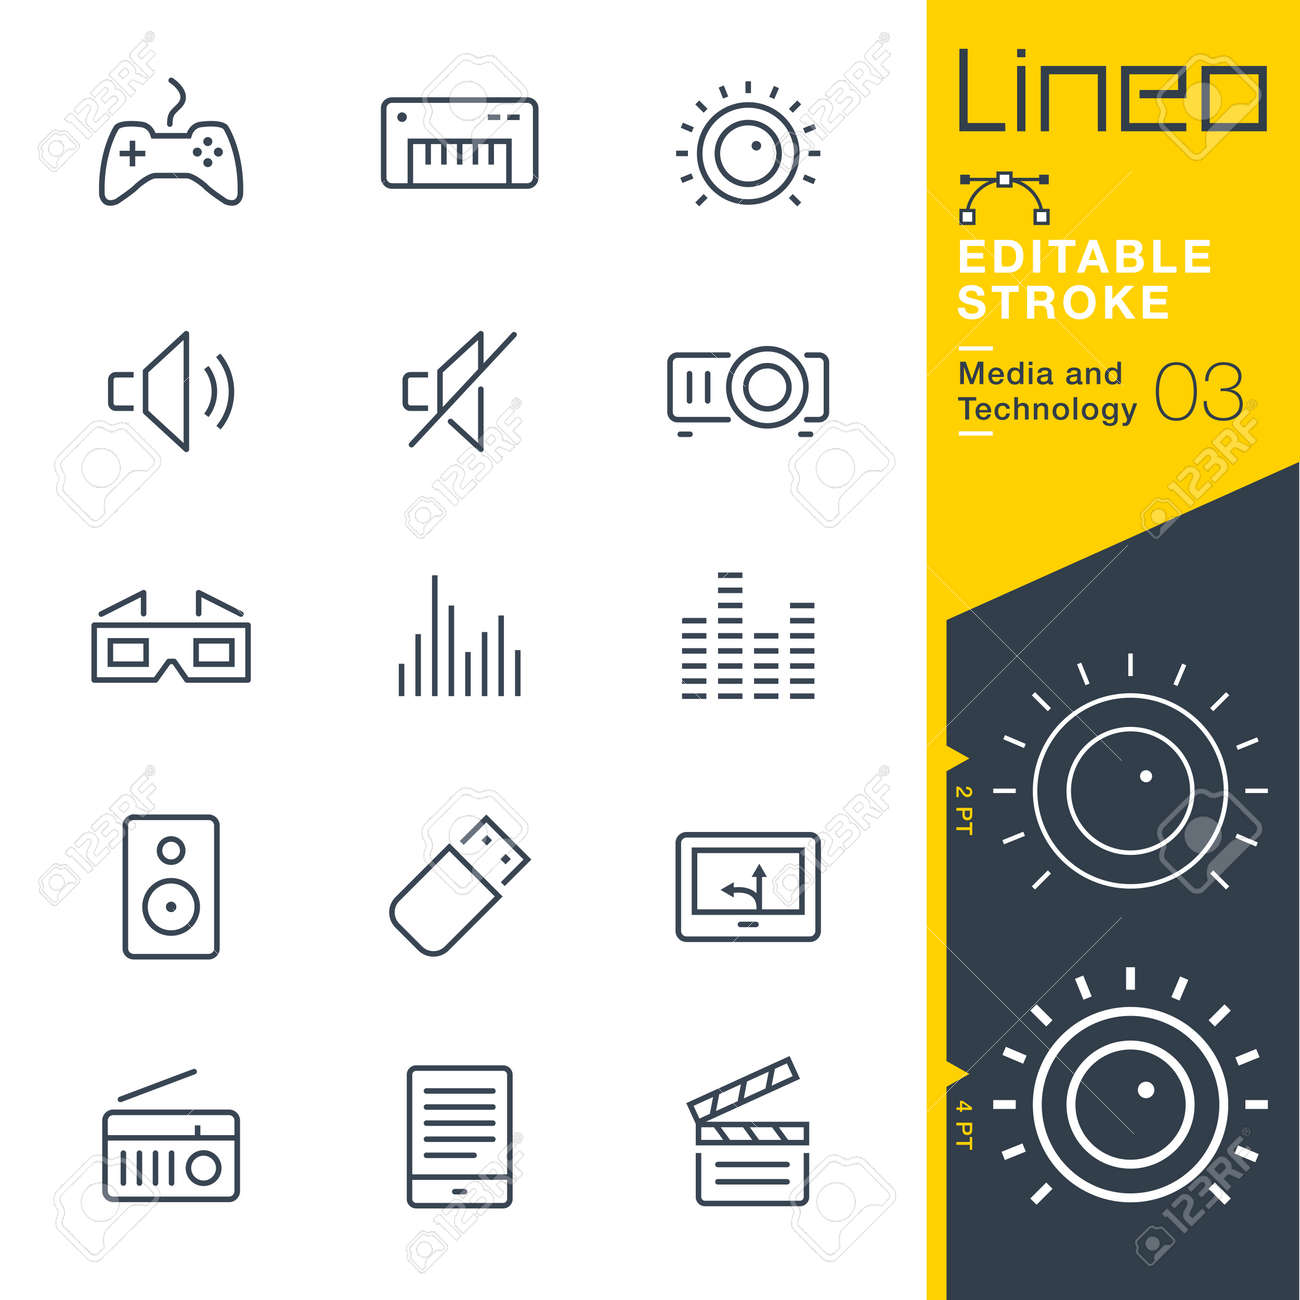 Lineo Editable Stroke - Media and Technology line icon - 84399463